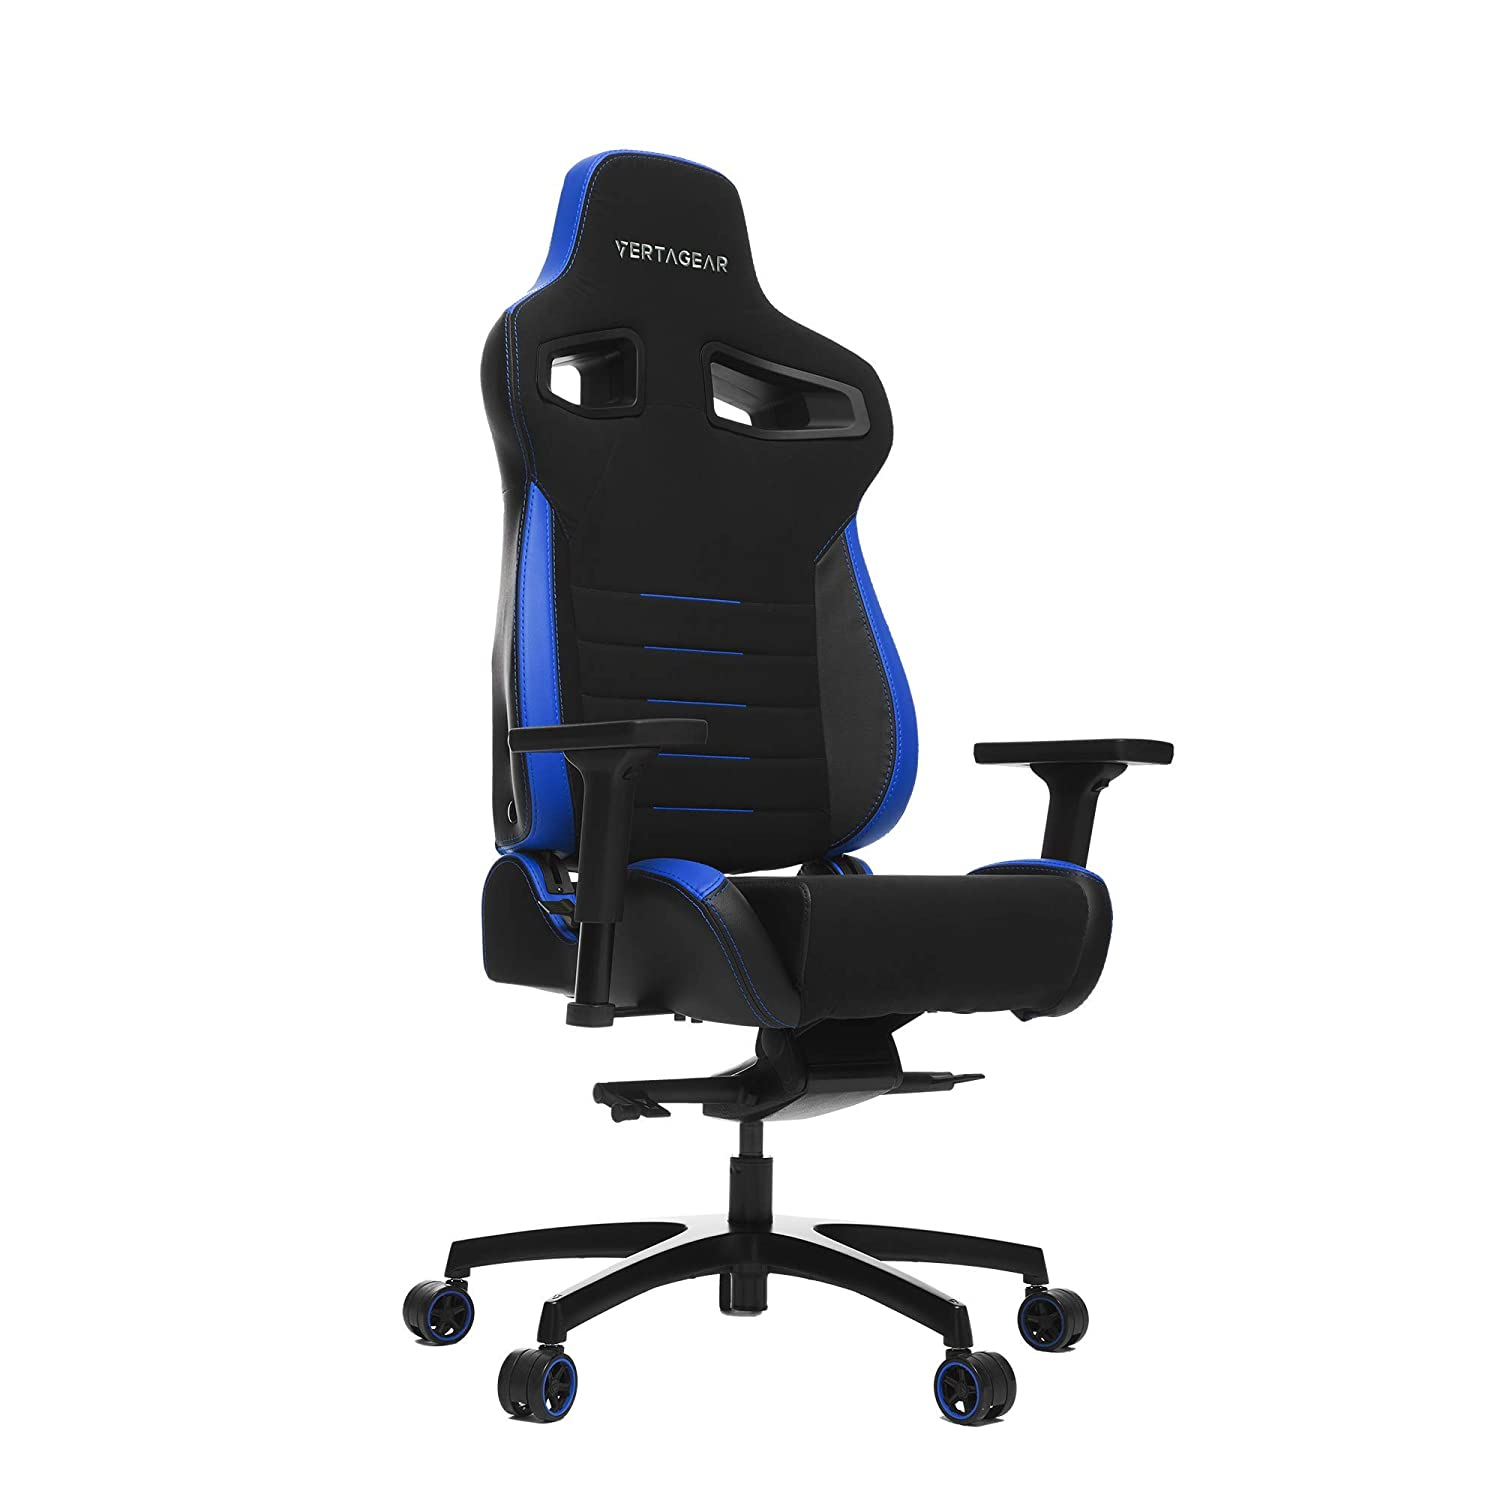 Amazon.com: VERTAGEAR VG-PL4500_BL Racing Series P-Line PL4500 Gaming Chair Black/Blue Edition: Computers & Accessories